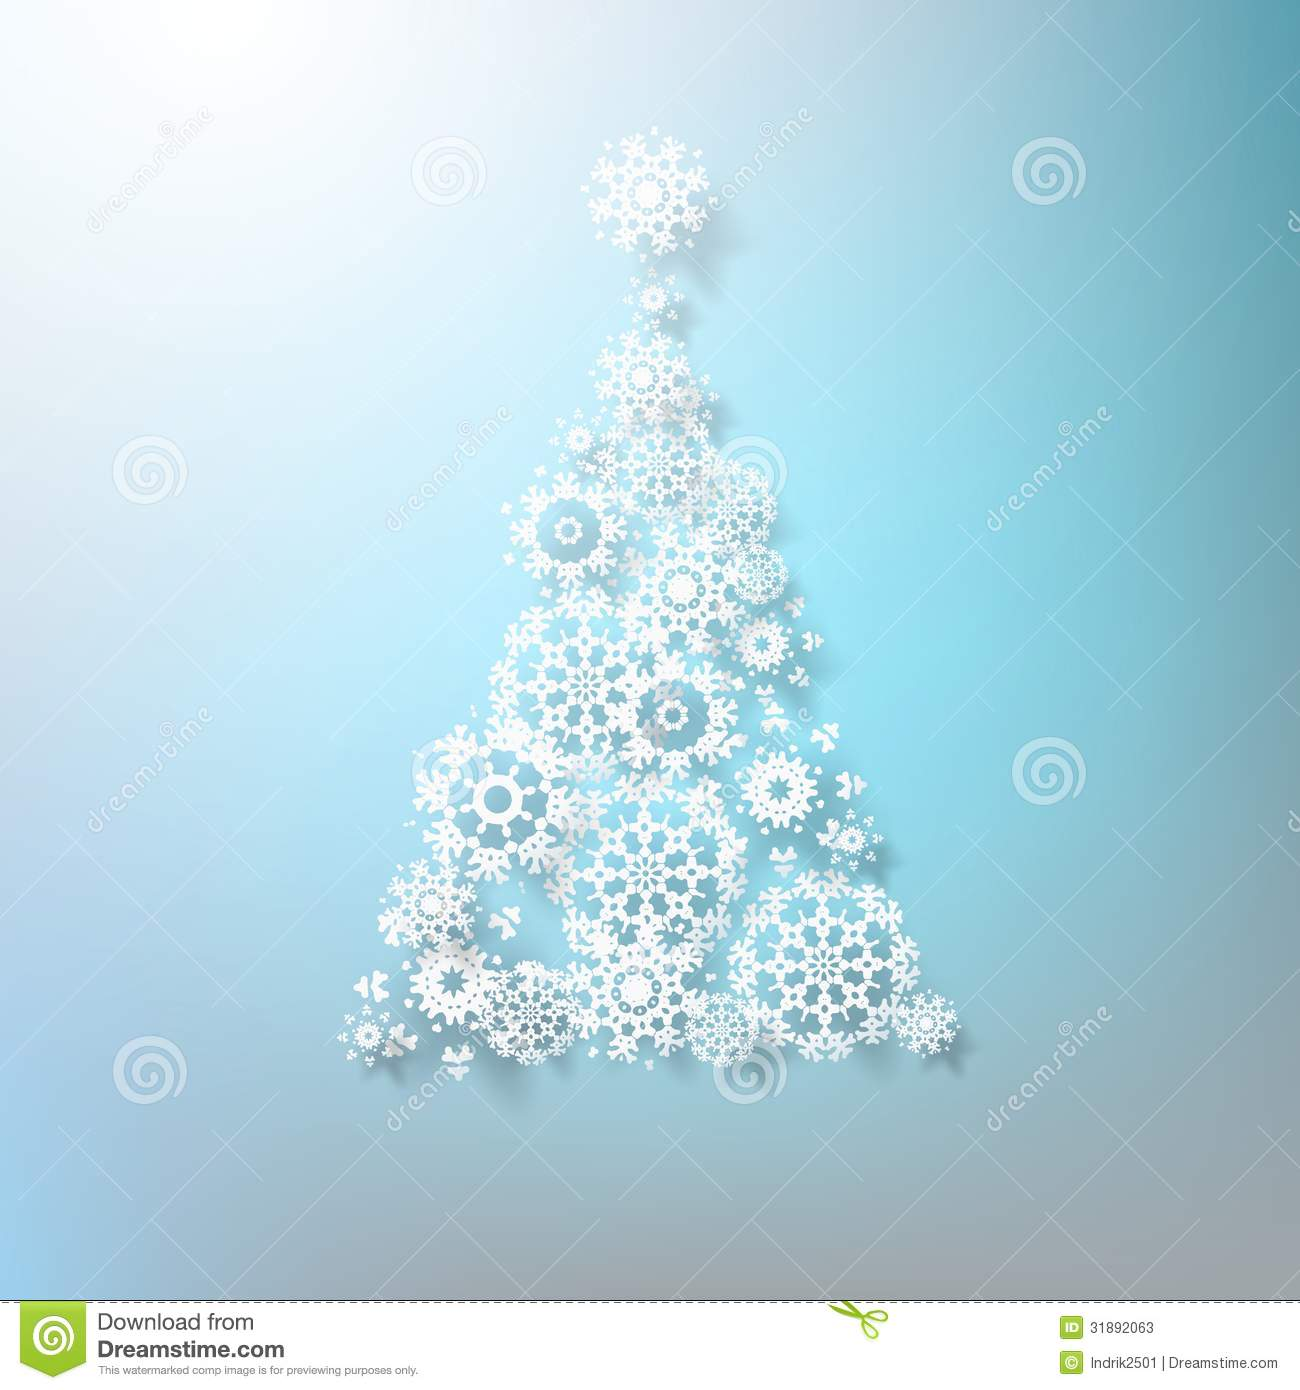 Abstract 3D Snowflakes Christmas Tree EPS 10 Stock Vector